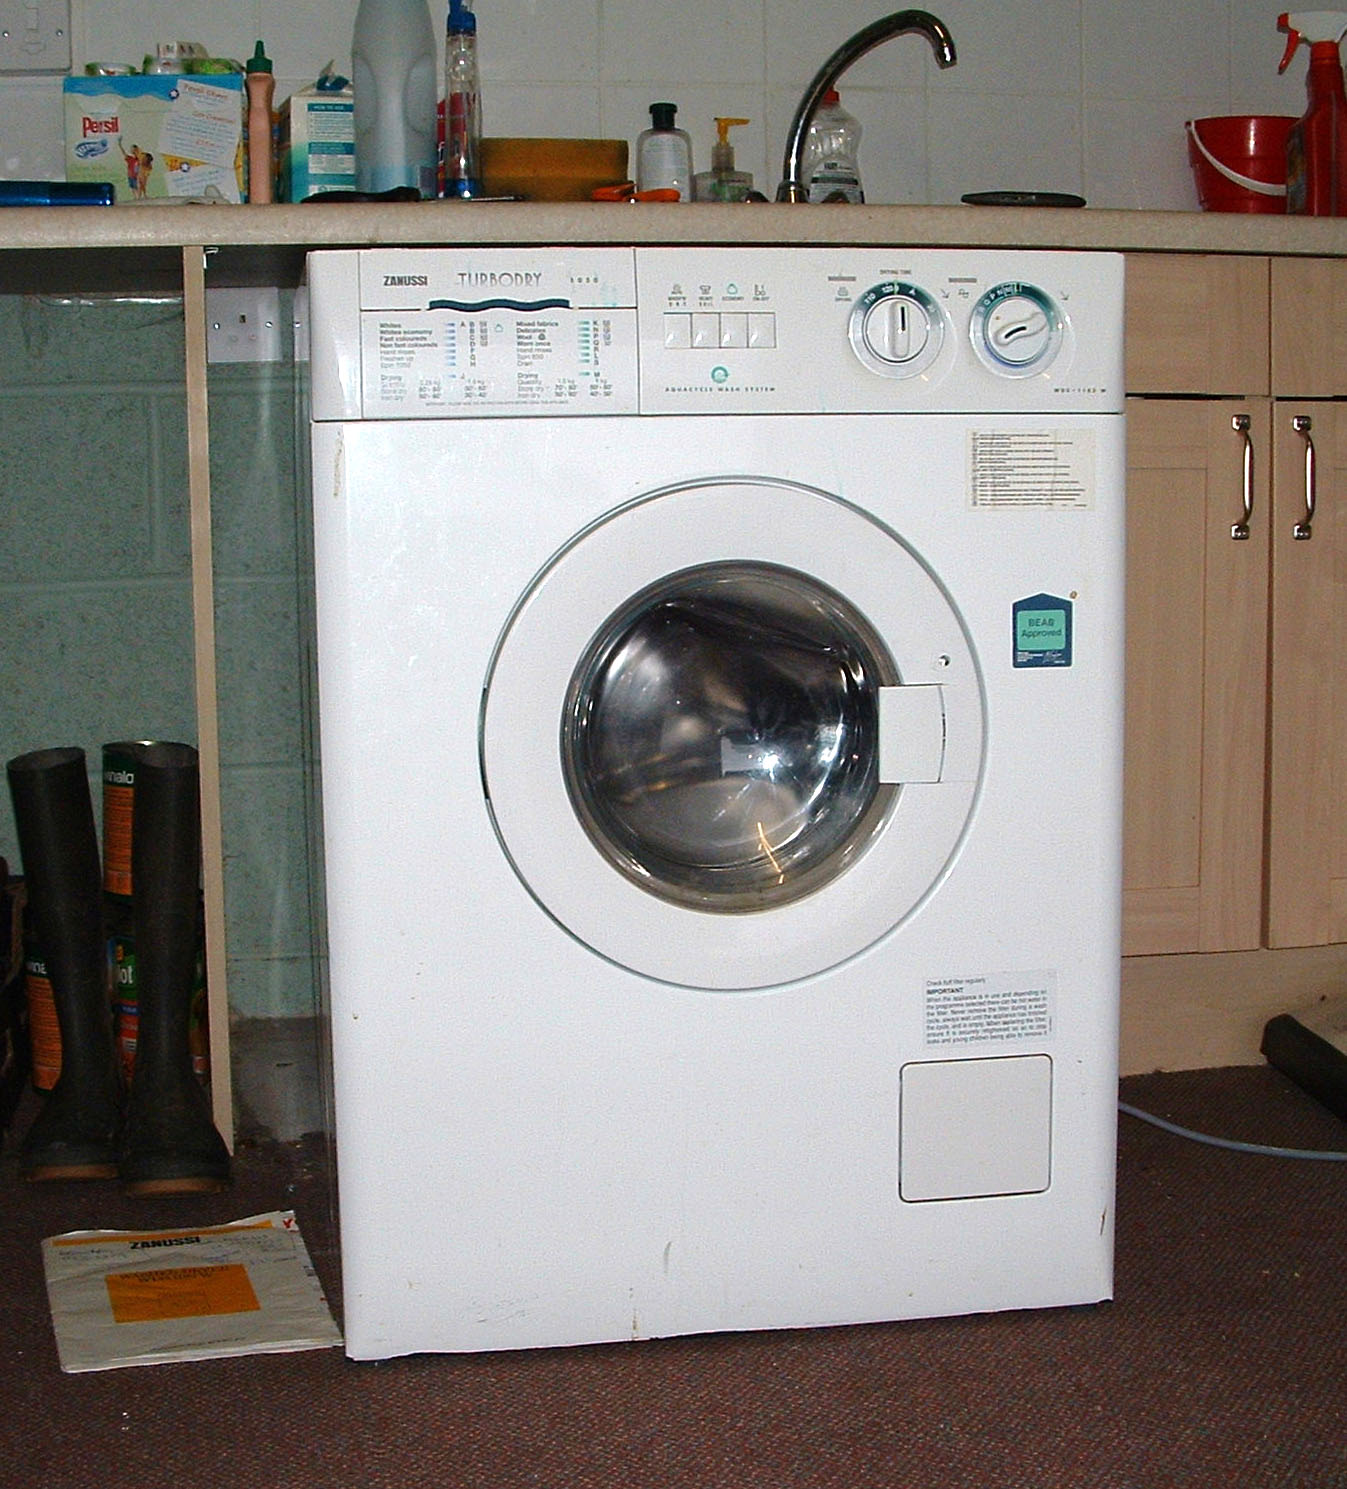 Images of Zanussi Washing Machine. User Manual Dishwasher